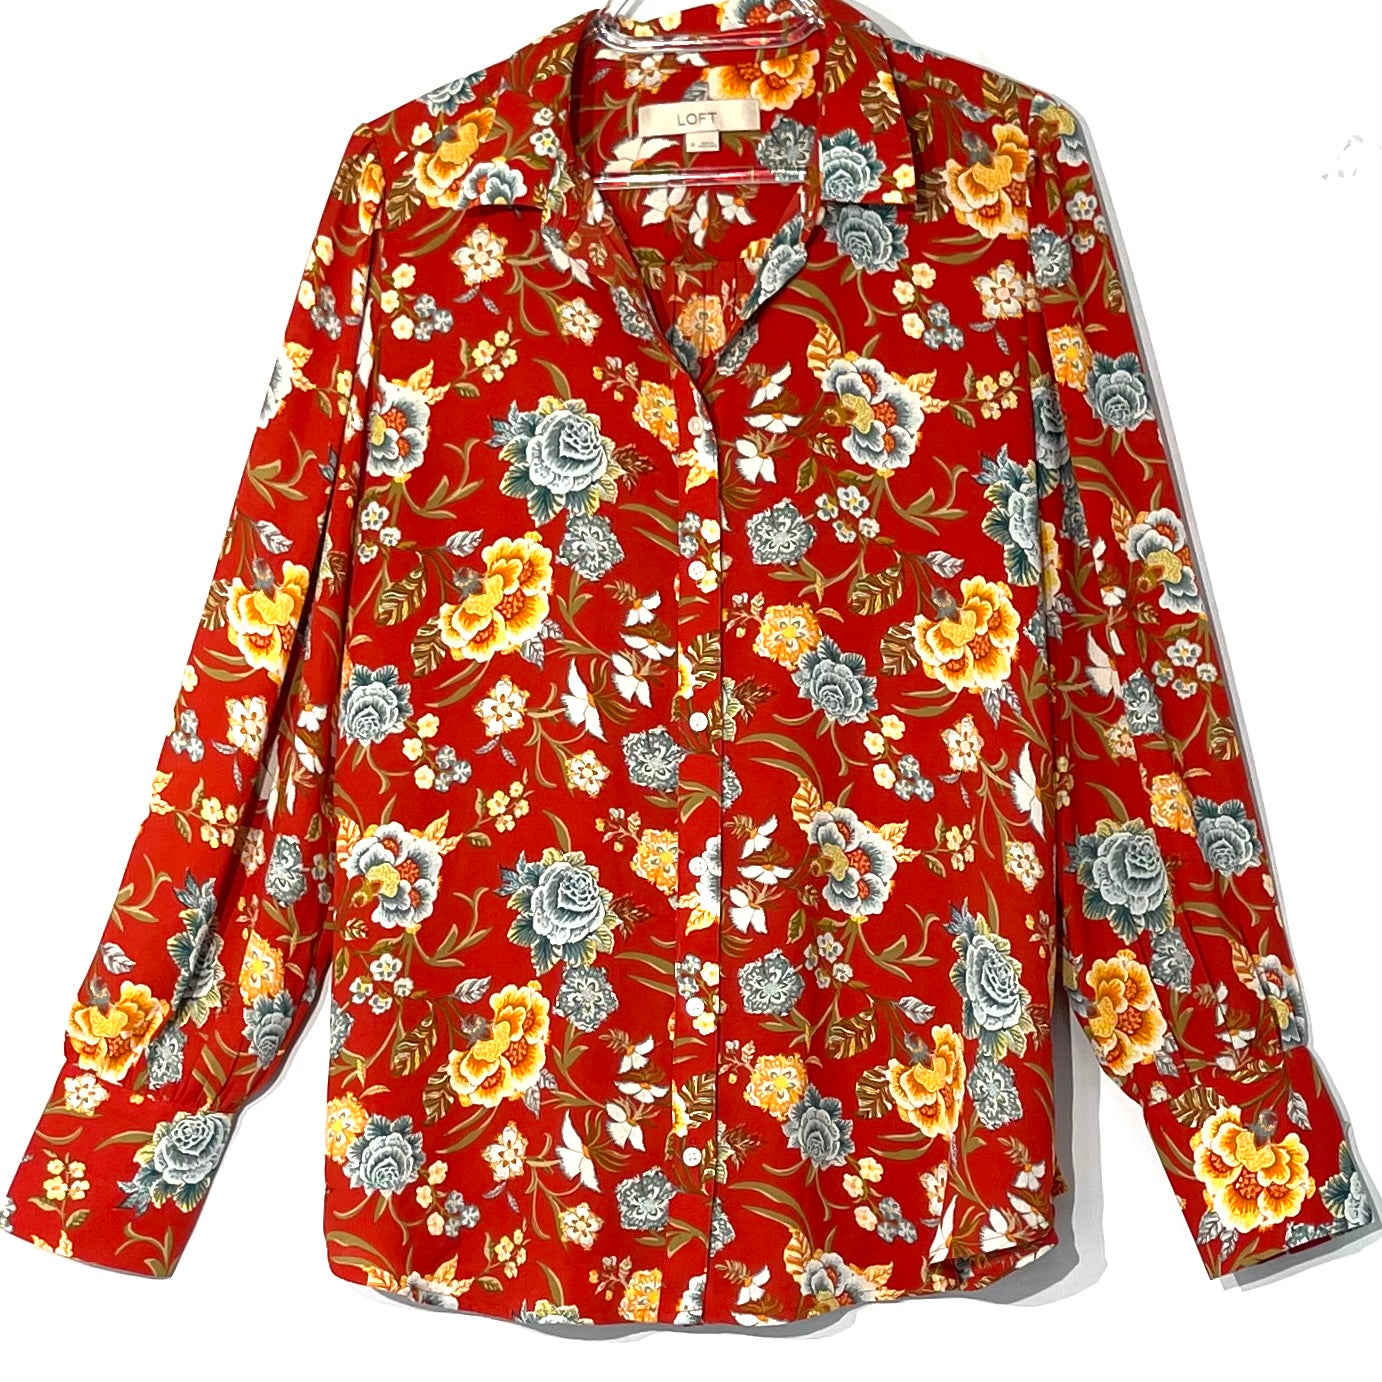 Primary Photo - BRAND: ANN TAYLOR LOFT <BR>STYLE: BLOUSE <BR>COLOR: FLORAL <BR>SIZE: M <BR>SKU: 262-26211-142017